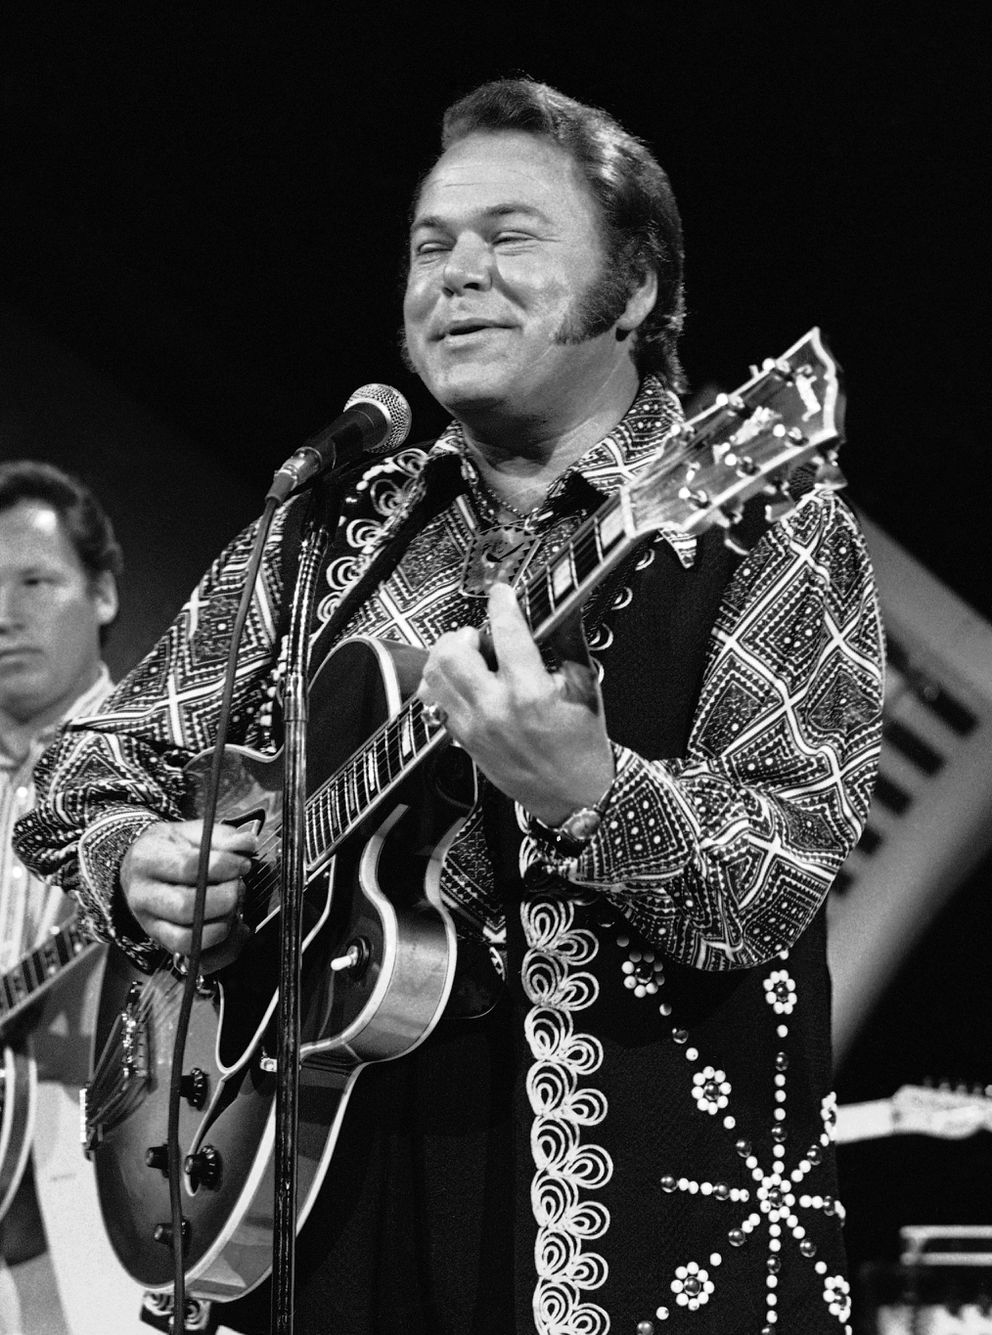 FILE - In this April 8, 1974, file photo, Roy Clark, one of the leading performers of country music on television, performs in Burbank, Calif. Clark, the guitar virtuoso and singer who headlined the cornpone TV show 'Hee Haw ' for nearly a quarter century, died Thursday, Nov. 15, 2018, due to complications from pneumonia at home in Tulsa, Okla., publicist Jeremy Westby said. He was 85. (AP Photo/Harold Filan, File)